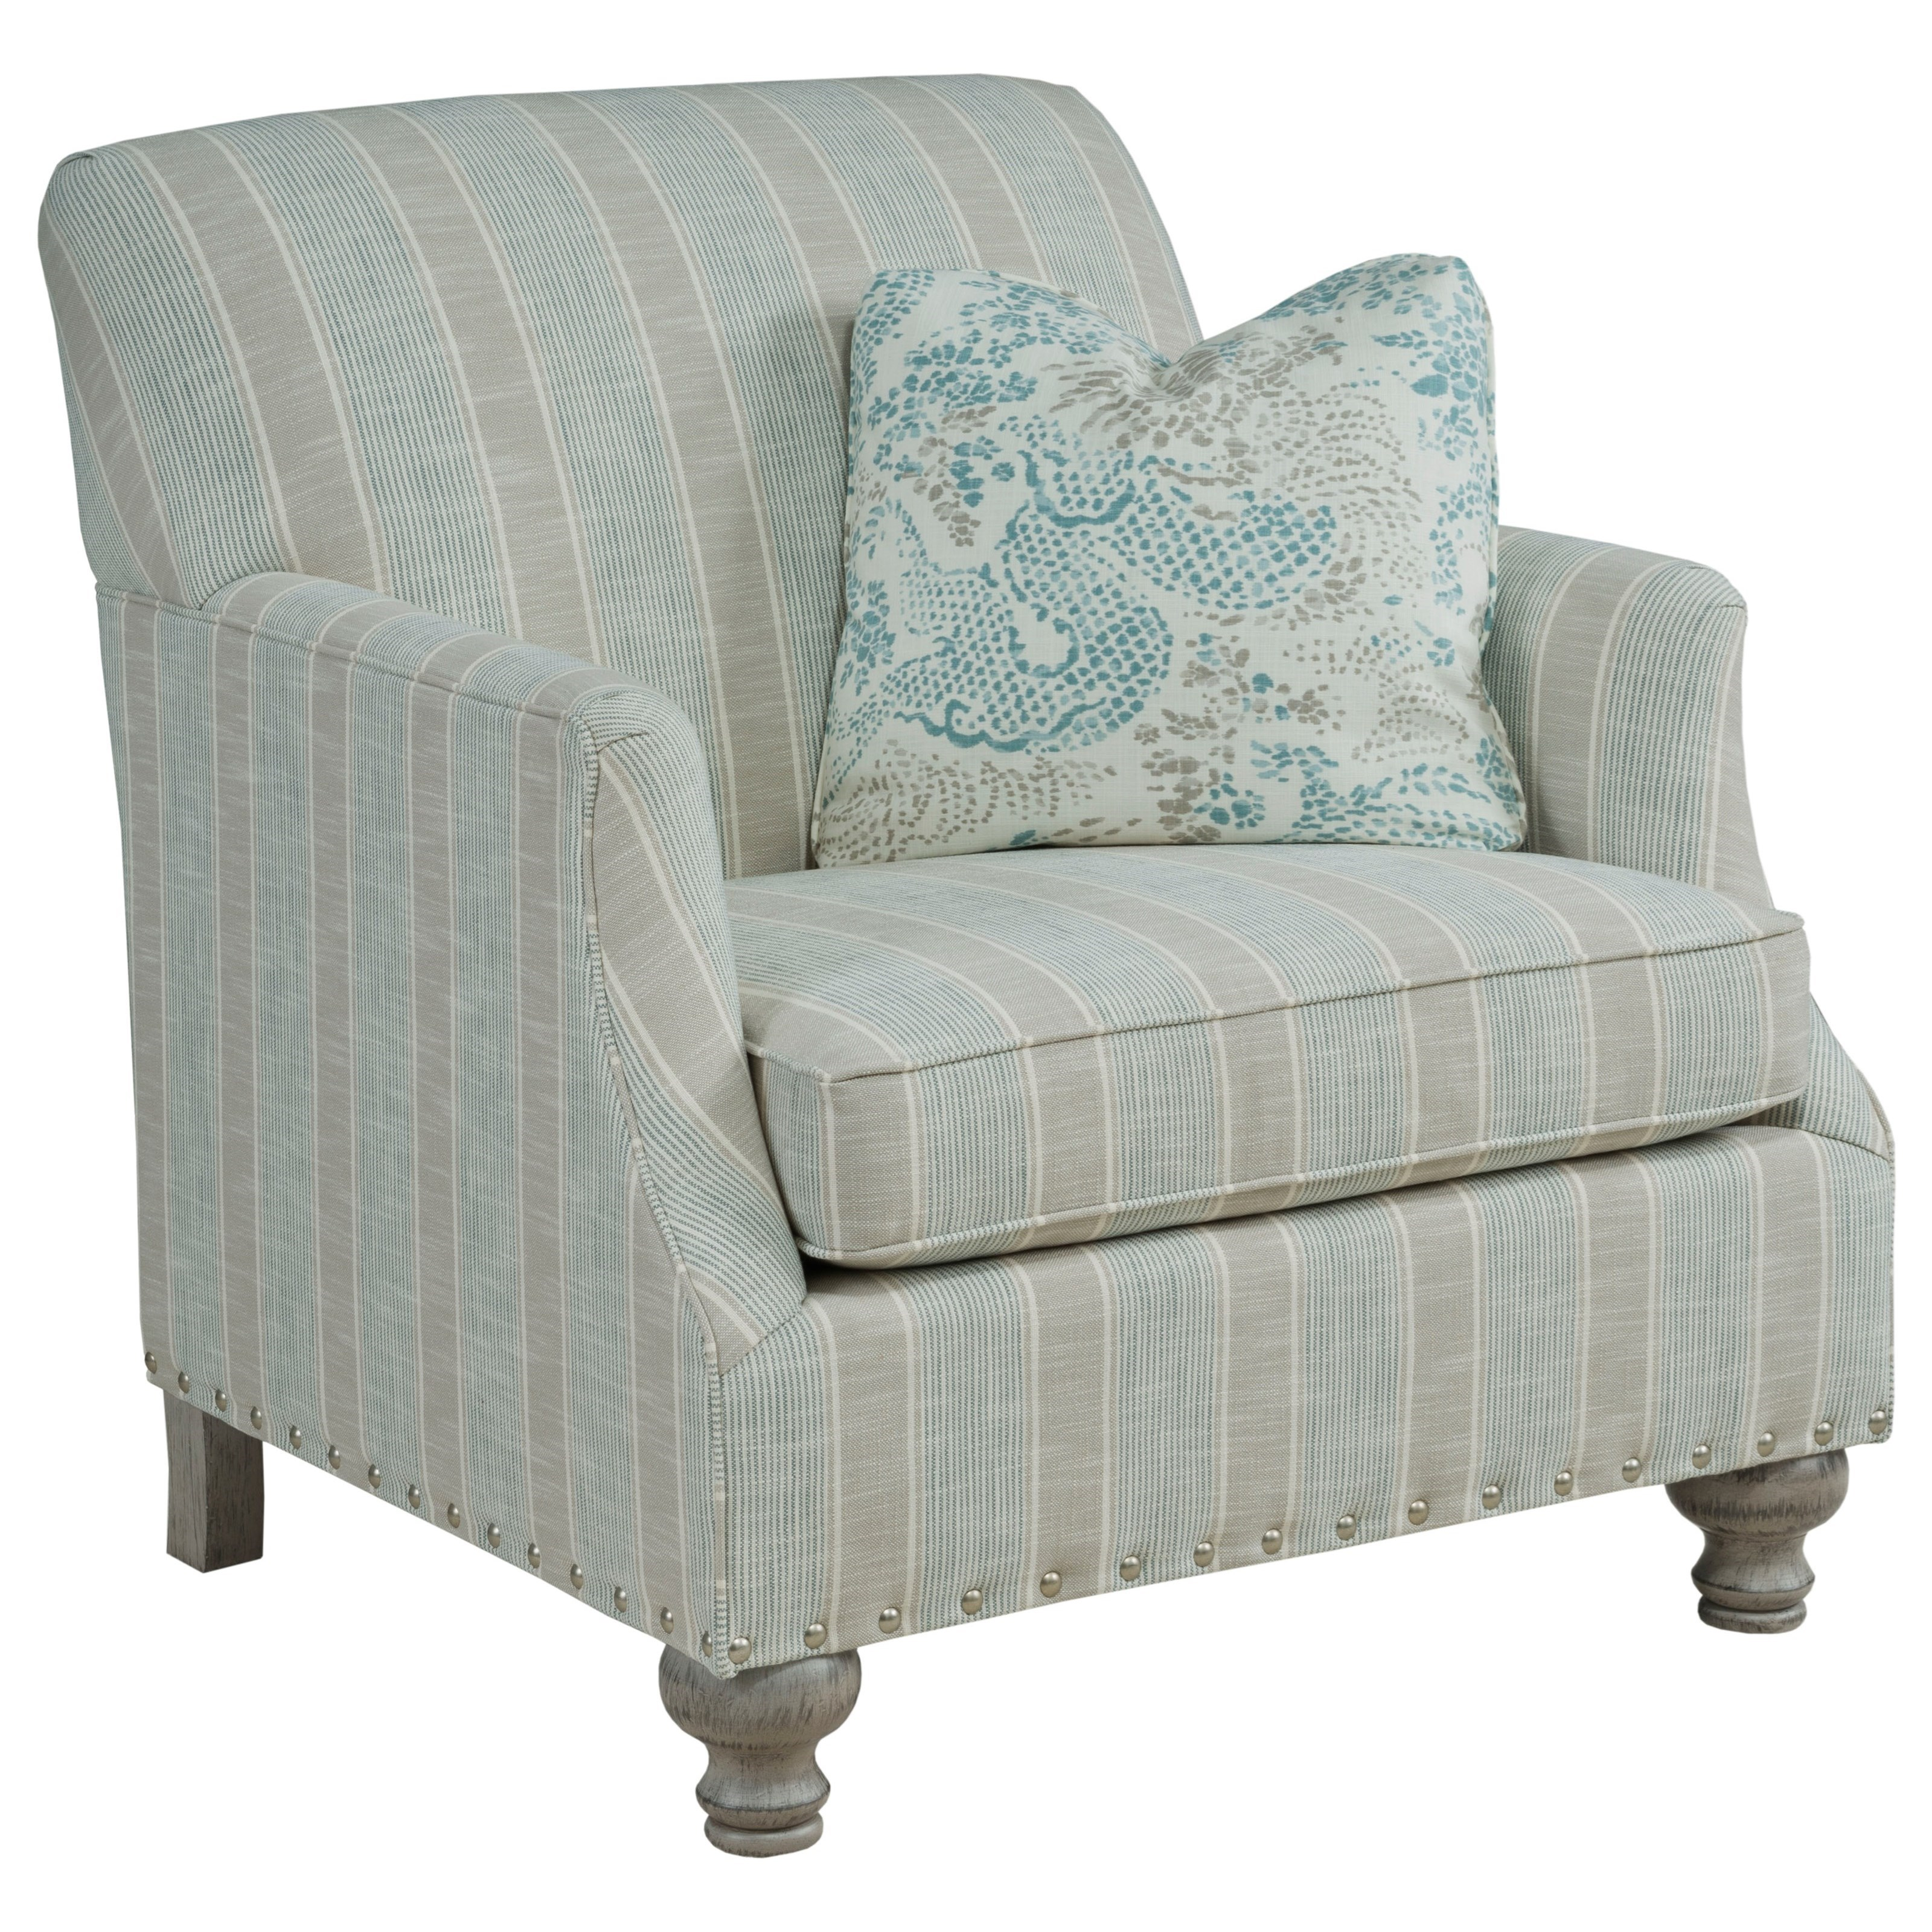 Liberty Chair by Kincaid Furniture at Johnny Janosik